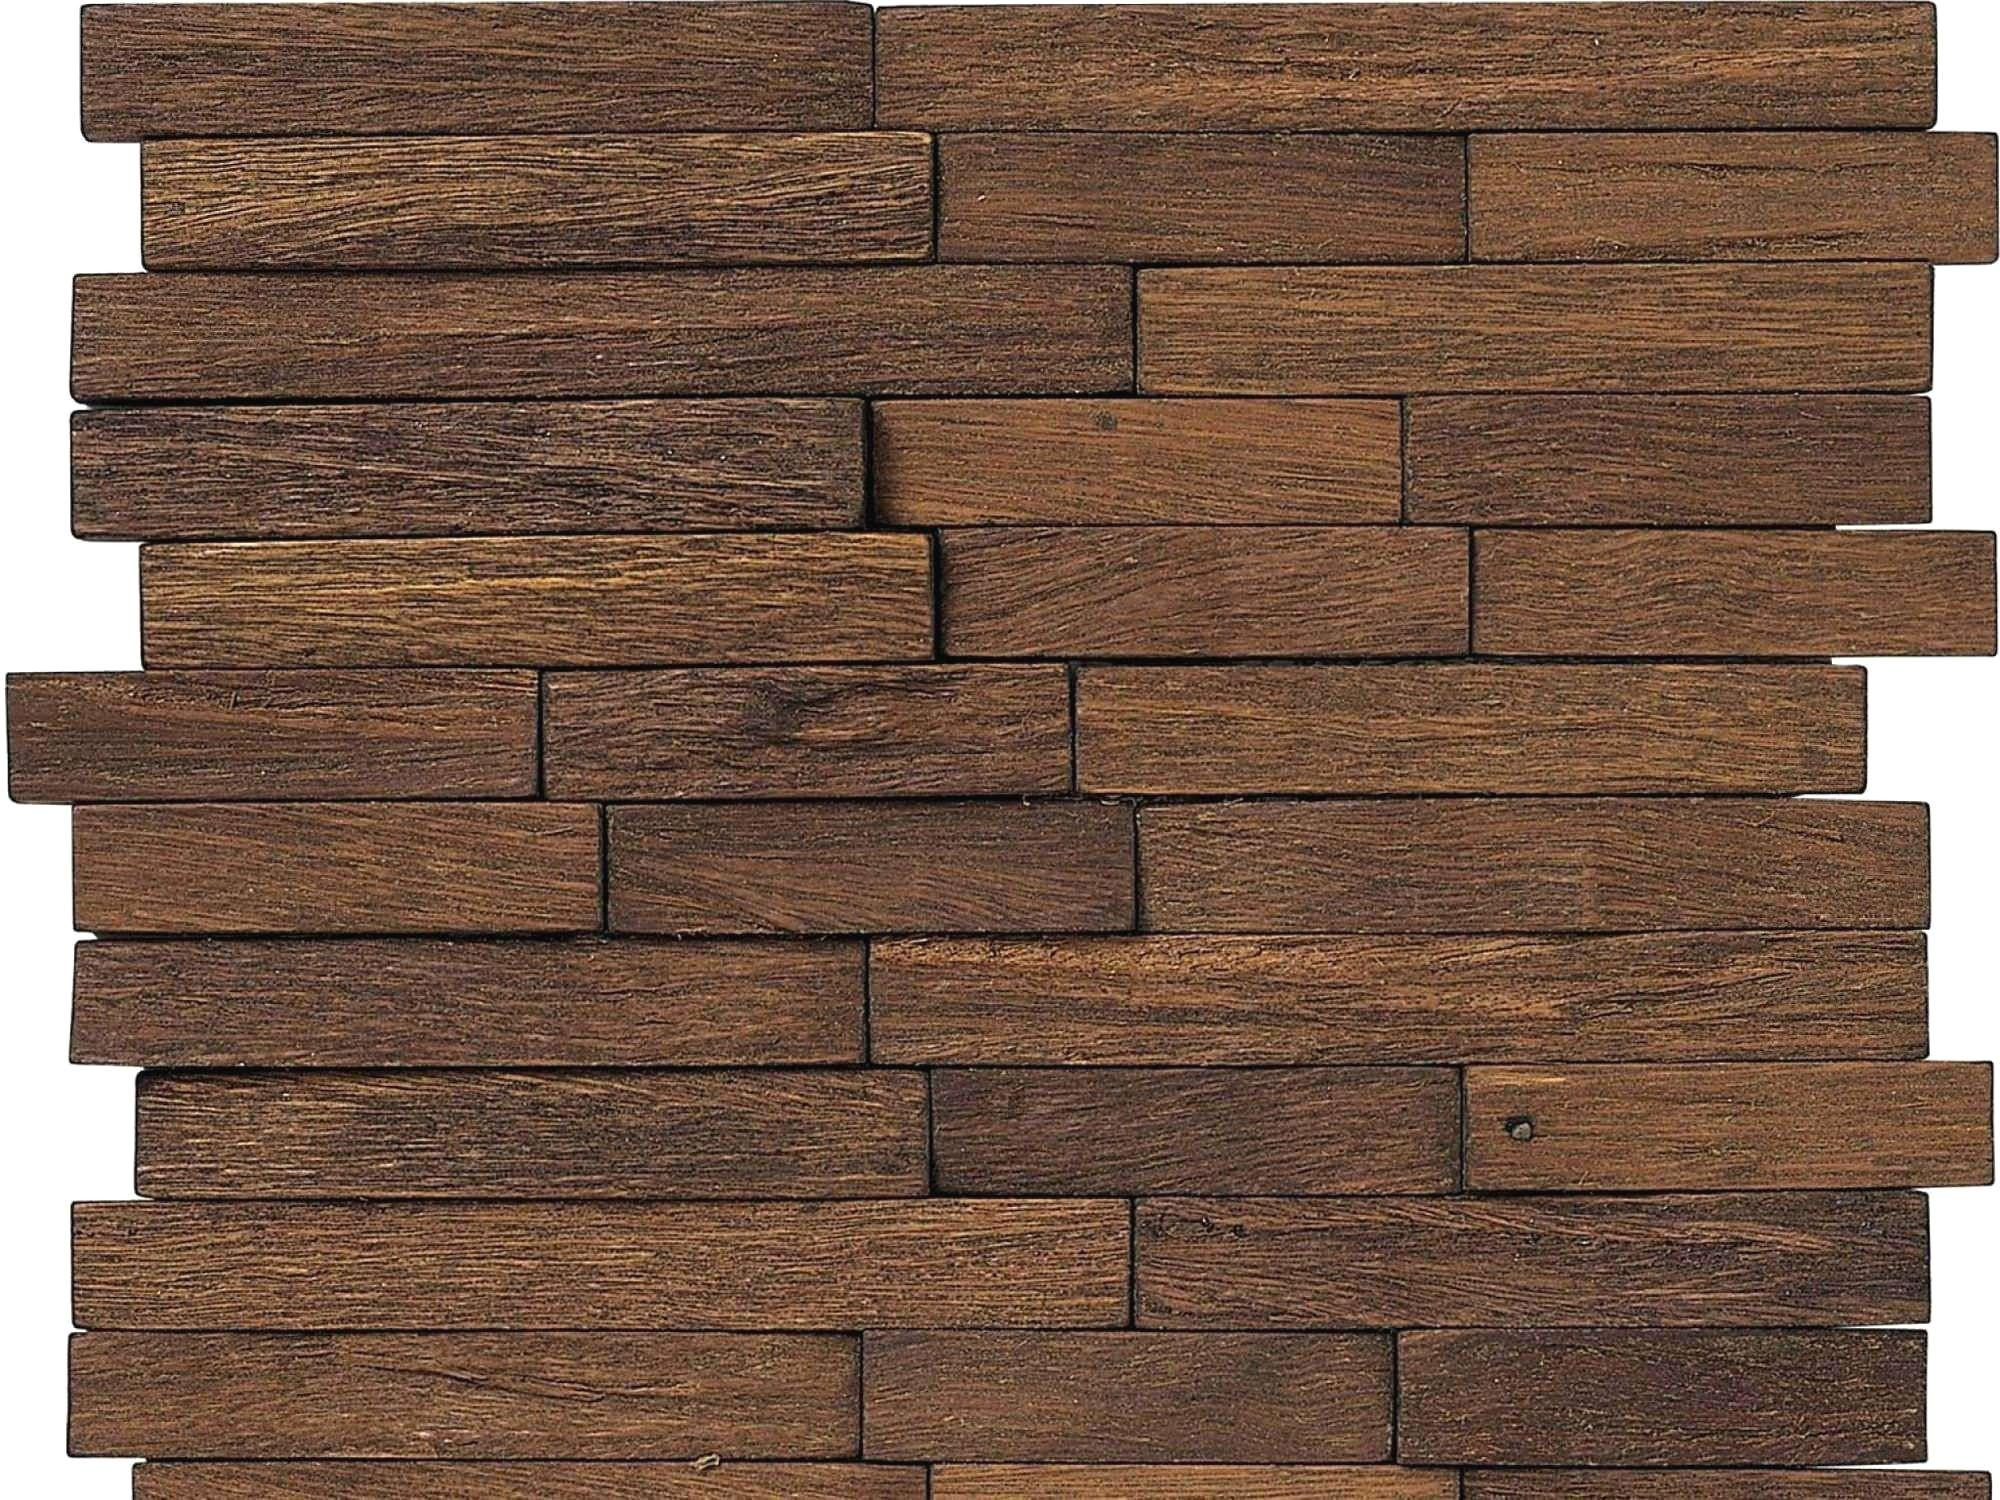 quality hardwood flooring of 10 diy wood flooring collections economyinnbeebe com with regard to wood floors diy home design new metal wall art panels fresh 1 kirkland wall decor home design 0d